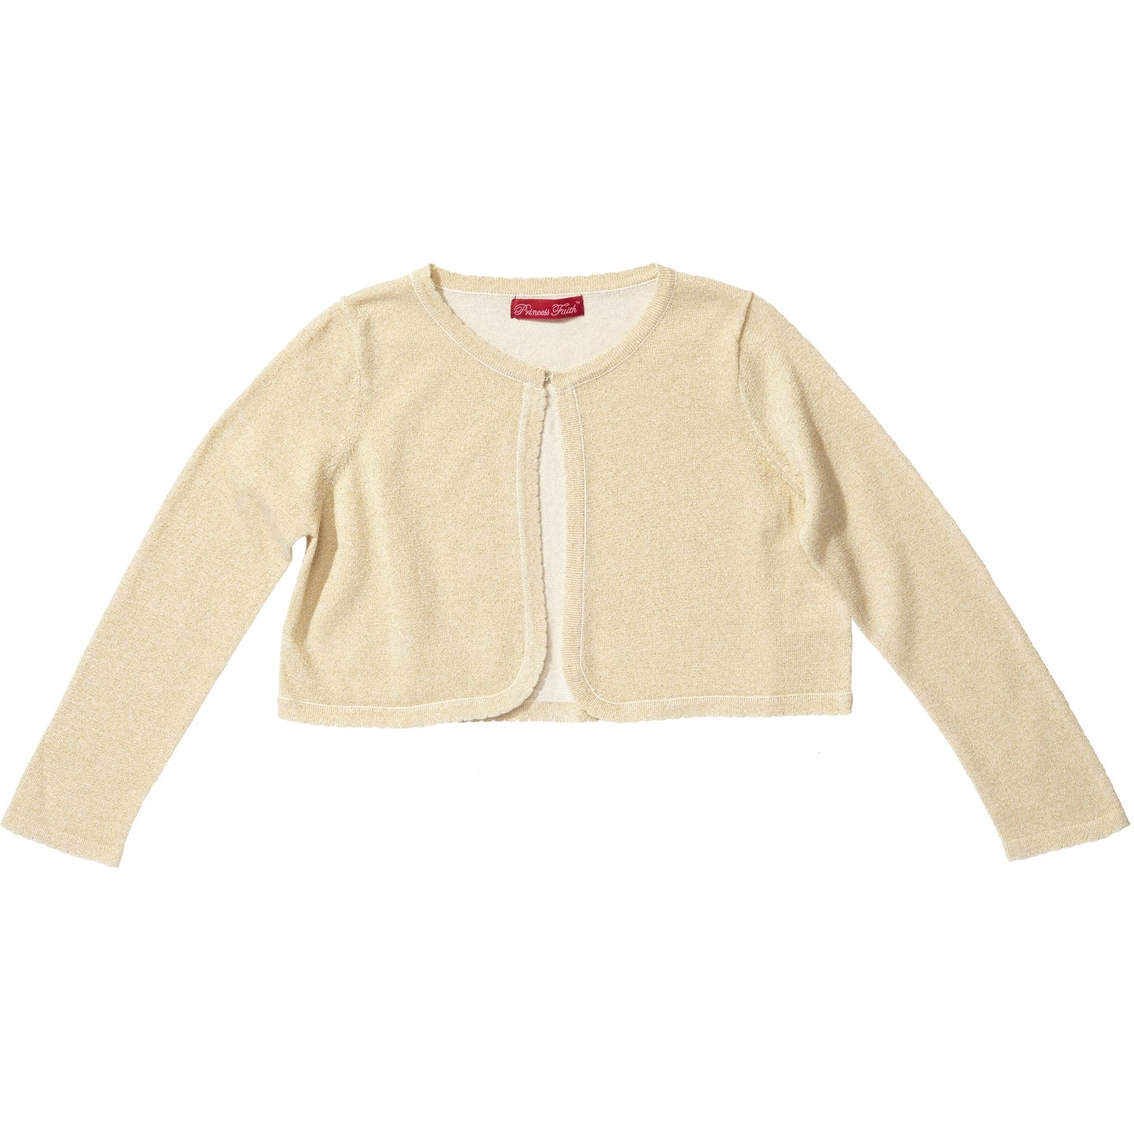 Princess Faith Little Girls/girls Metallic Shrug Cardigan | Coats ...